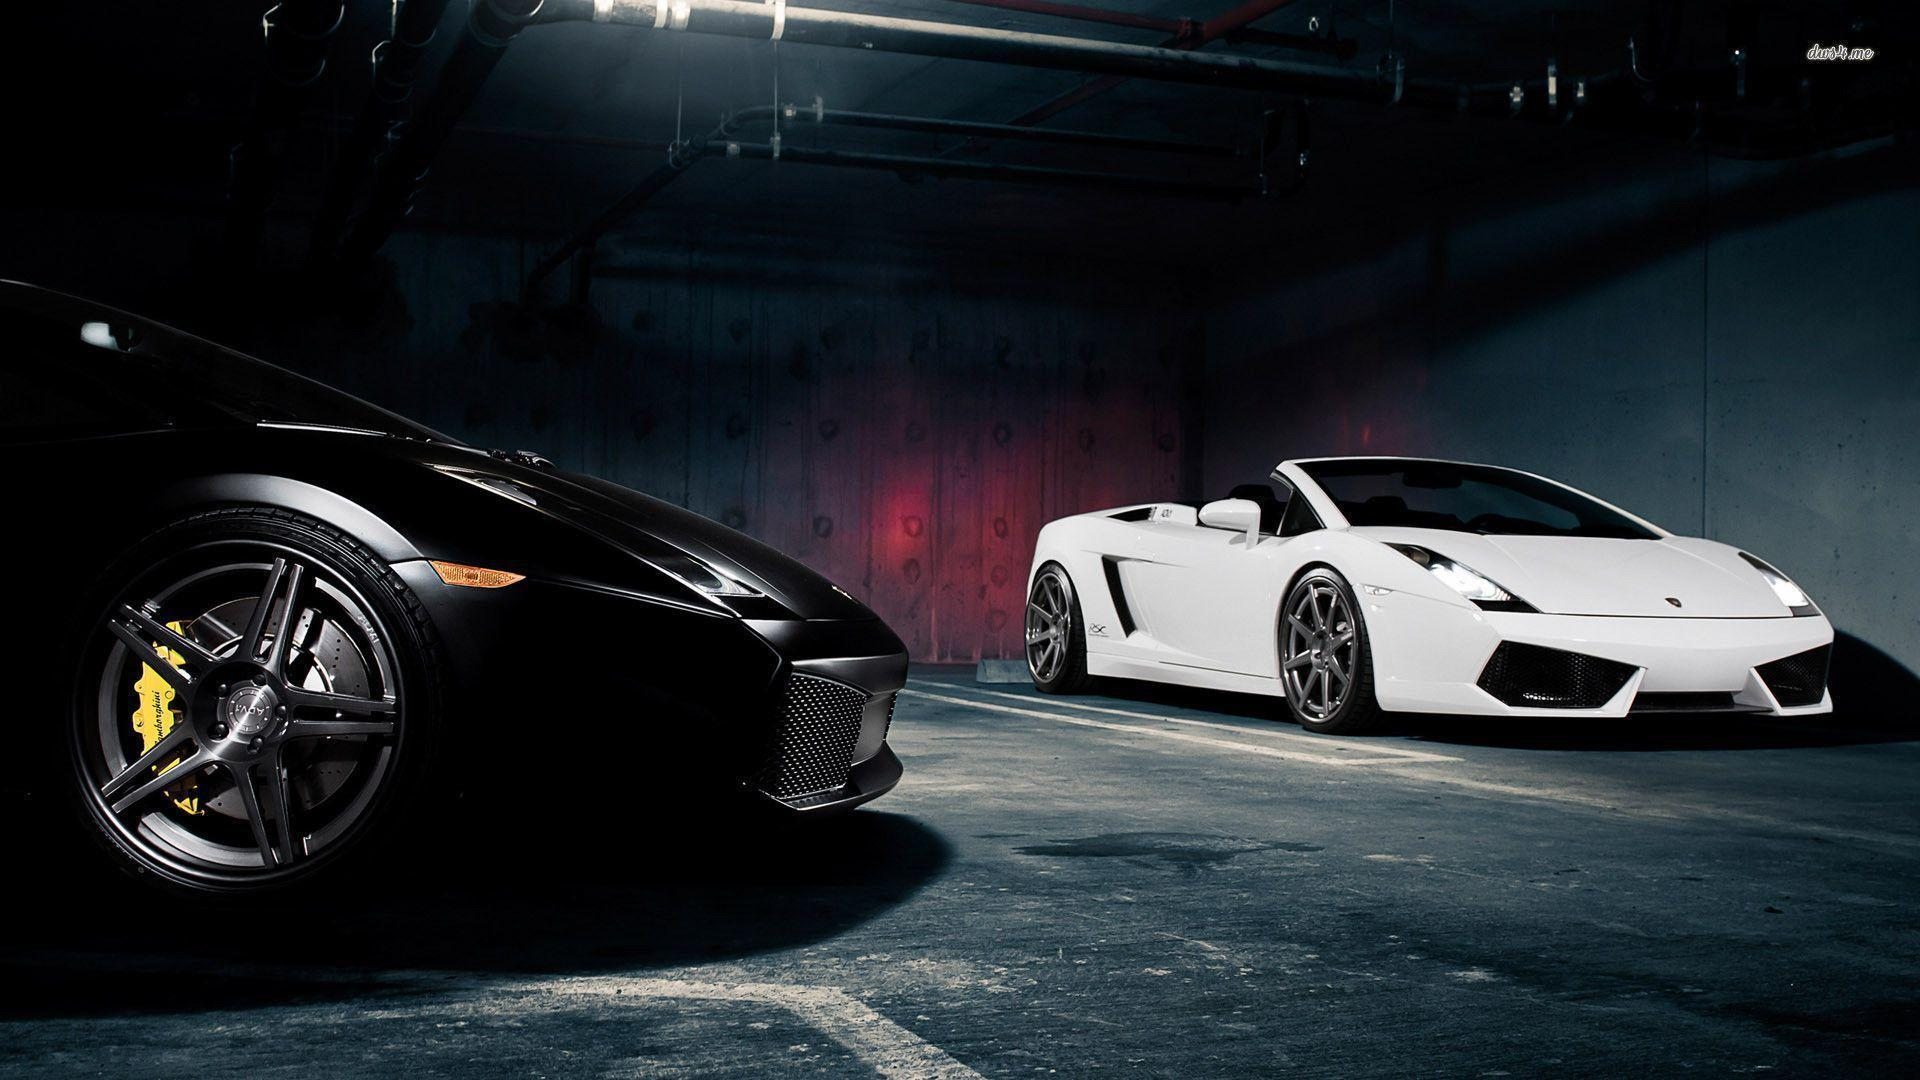 Honda Sports Car Wallpaper | Wallpaper Download « Mycarswallpaper